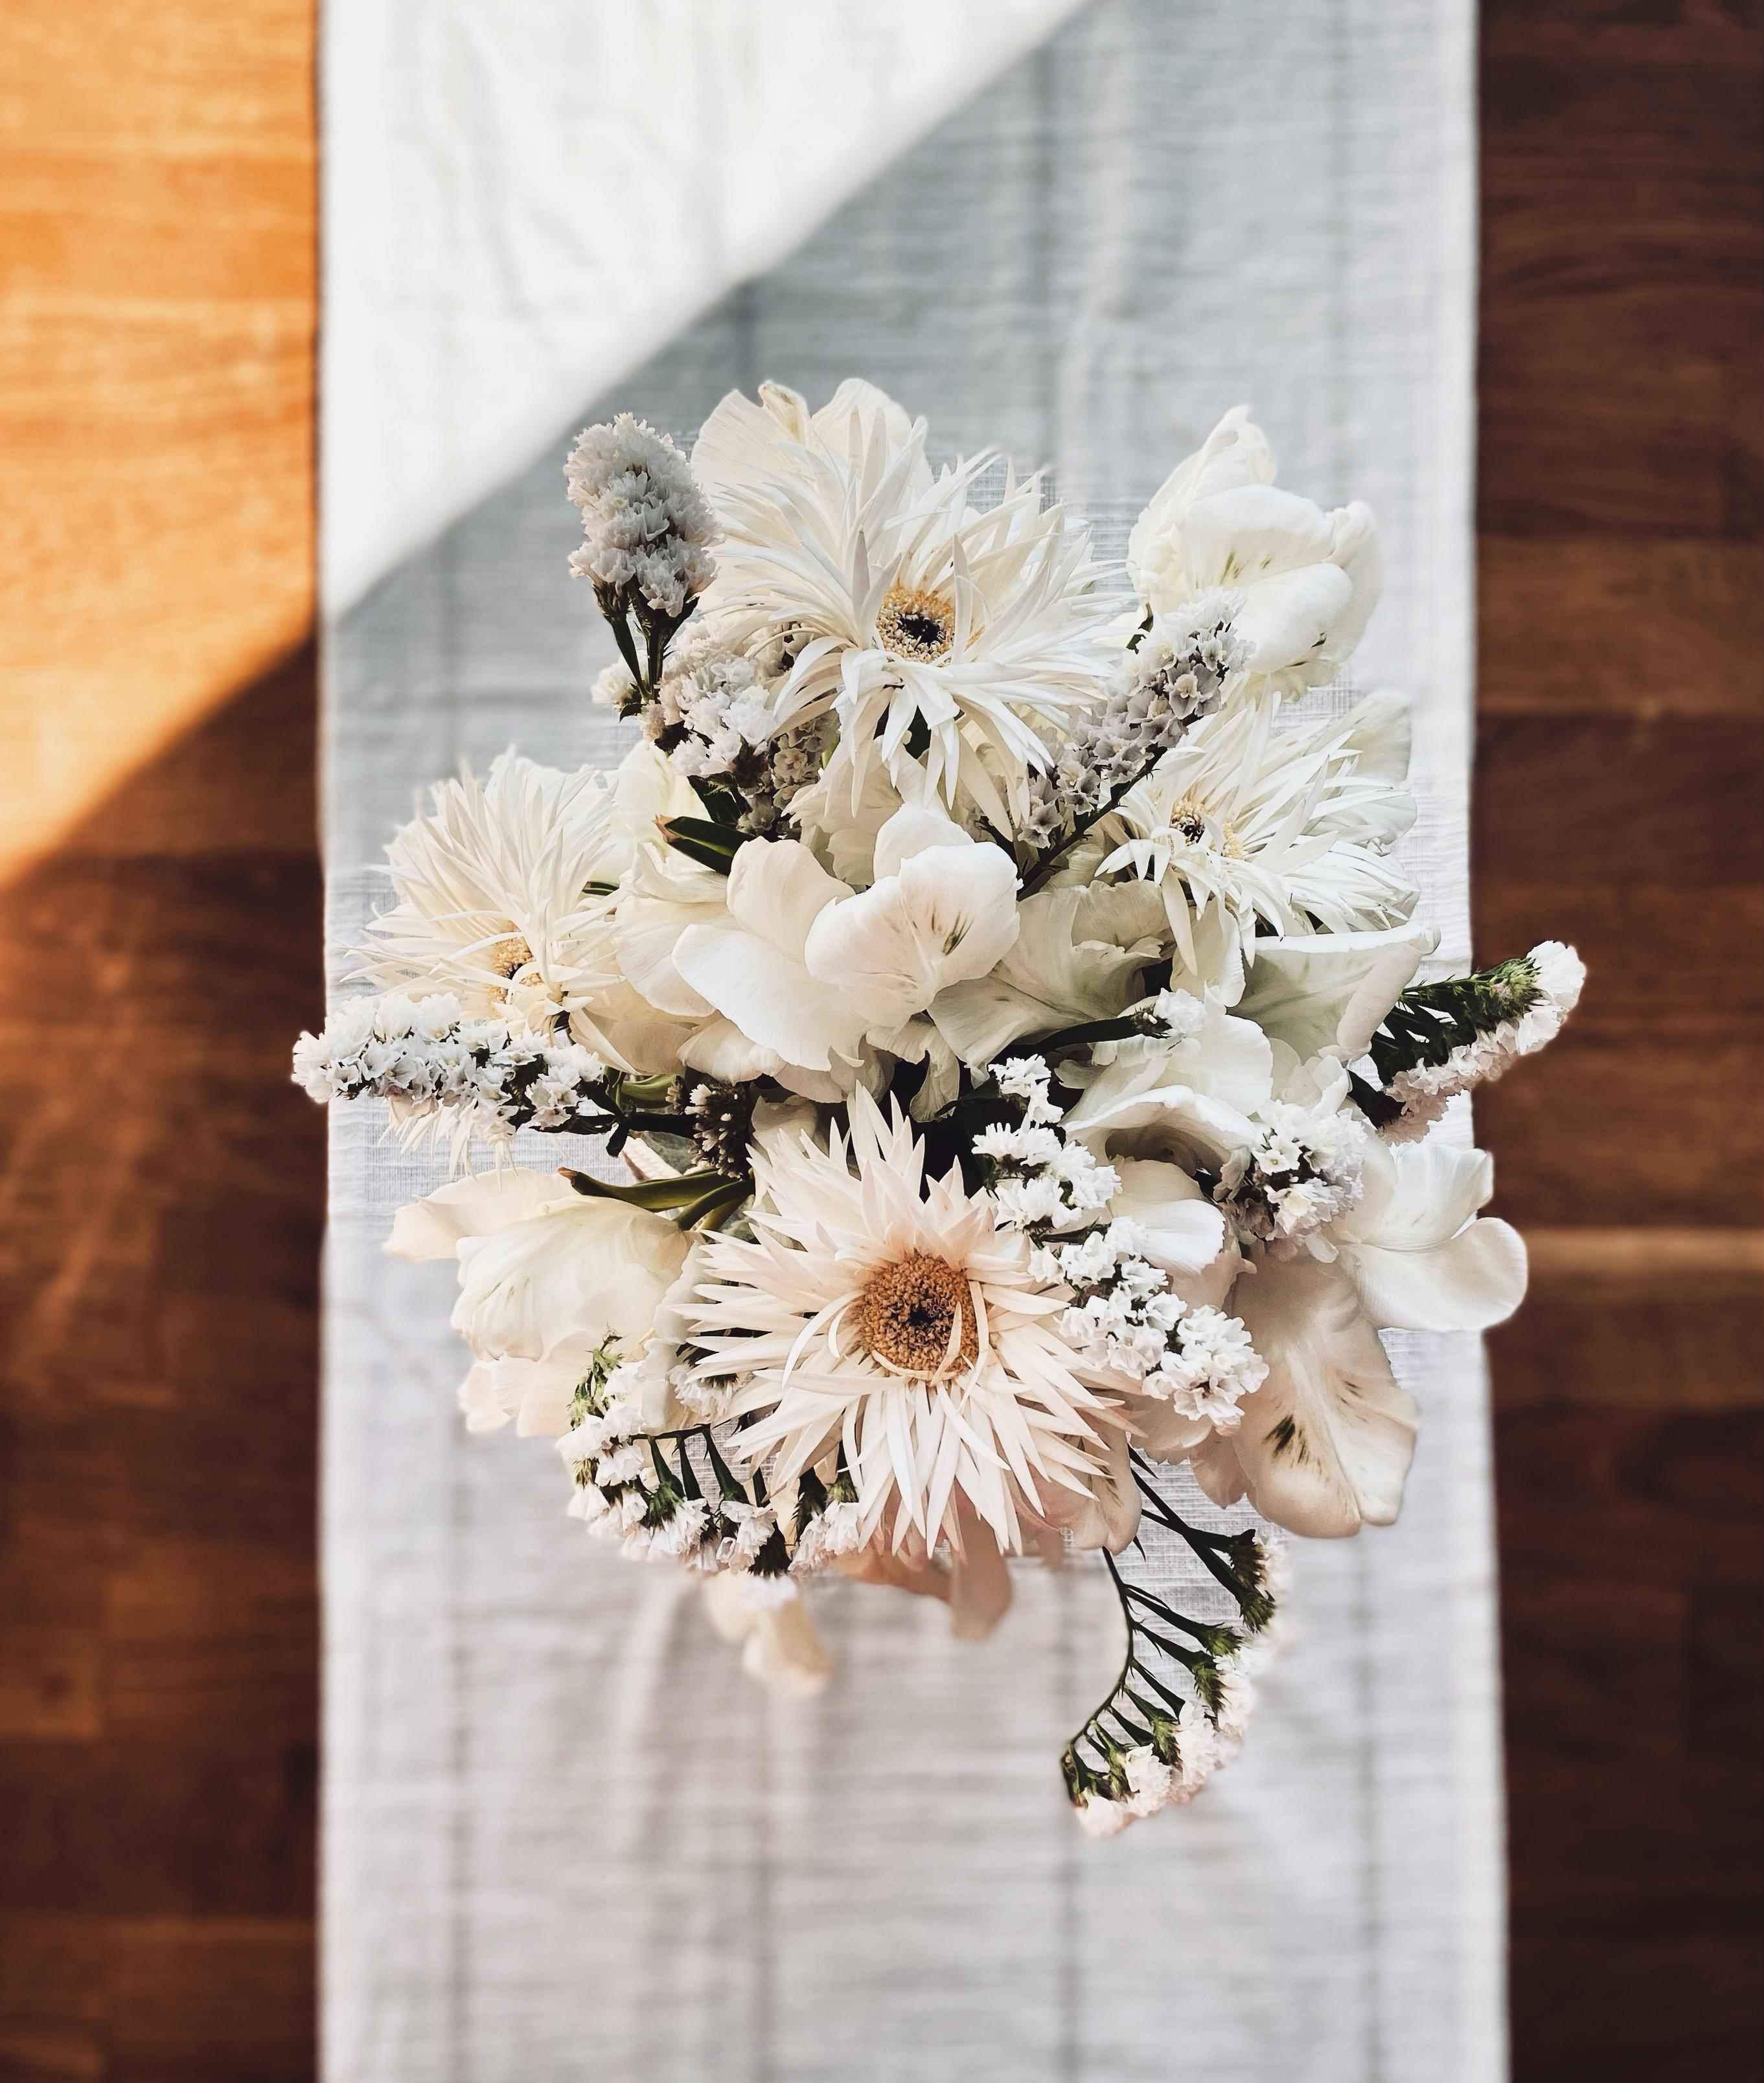 All about white flowers 🤍 #blumenliebe #boho #couchstyle